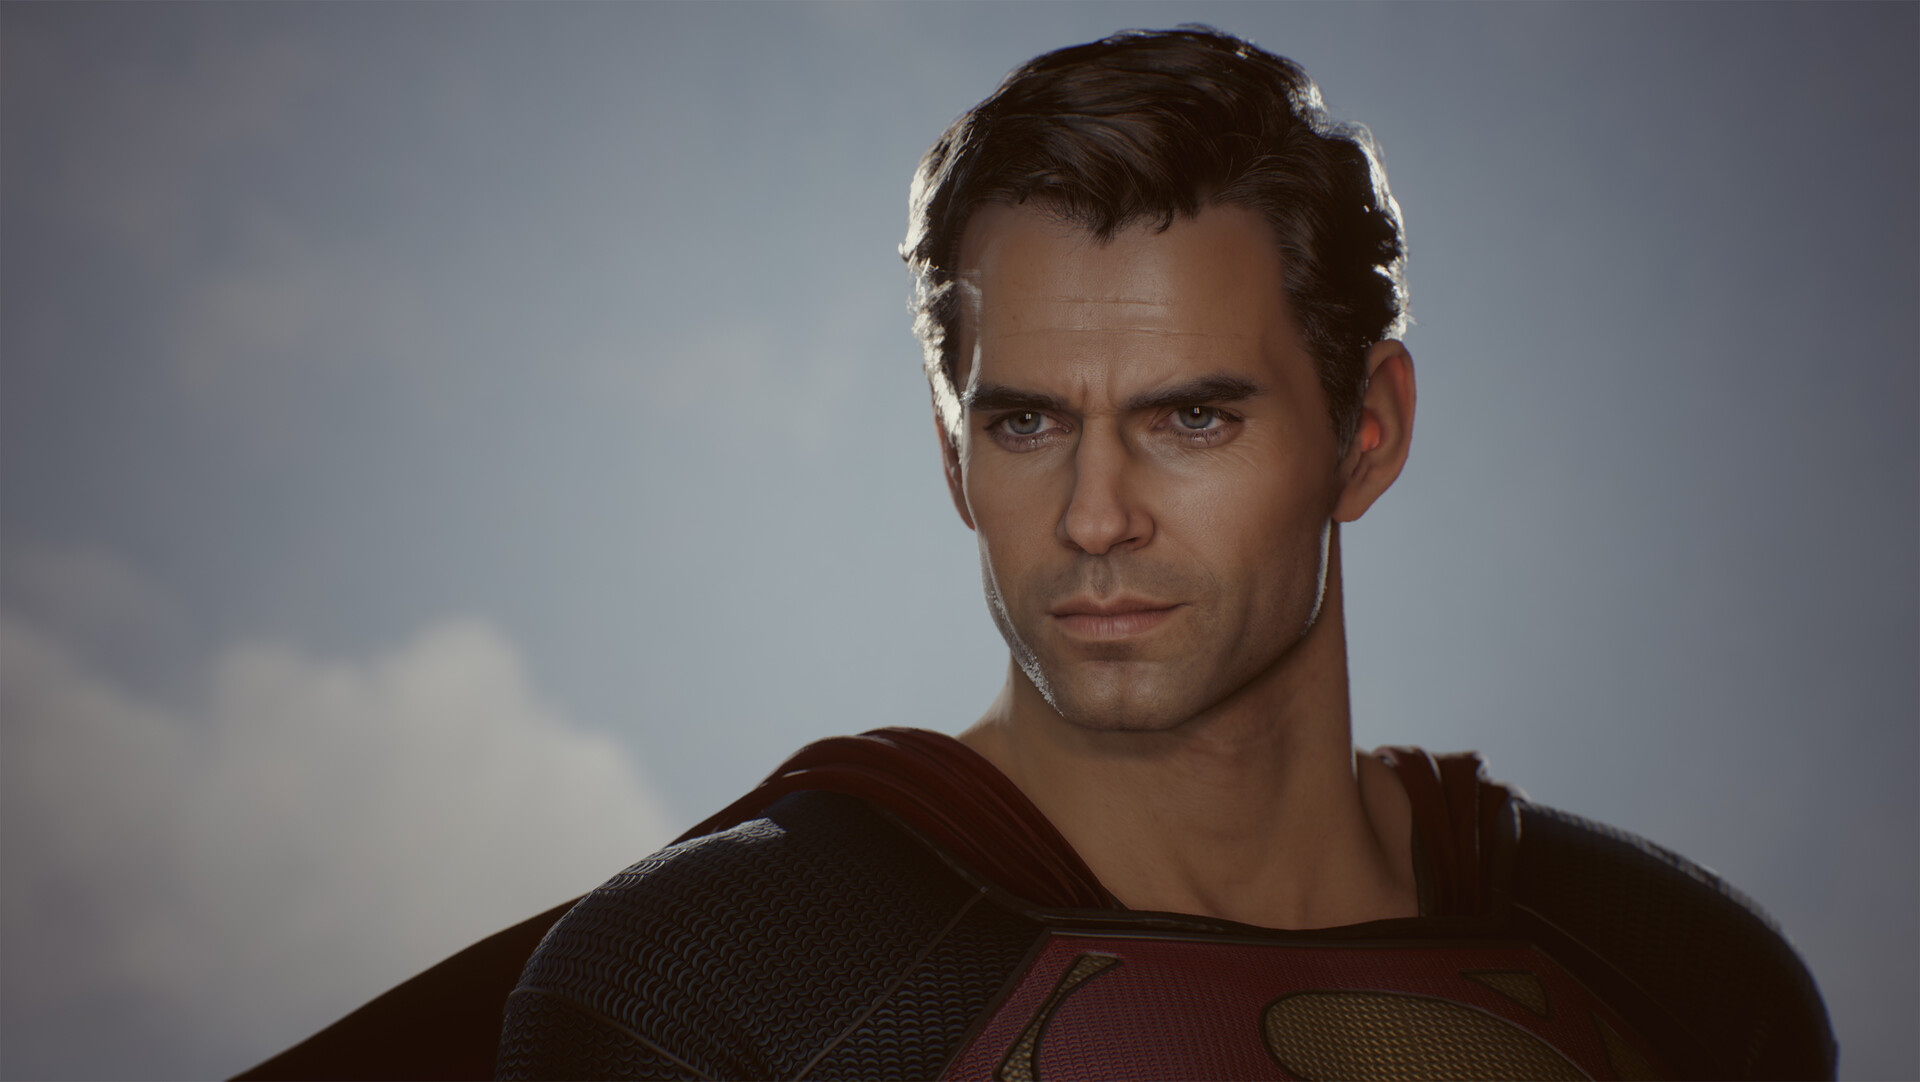 Then superman and beyond UE4 Real-time character